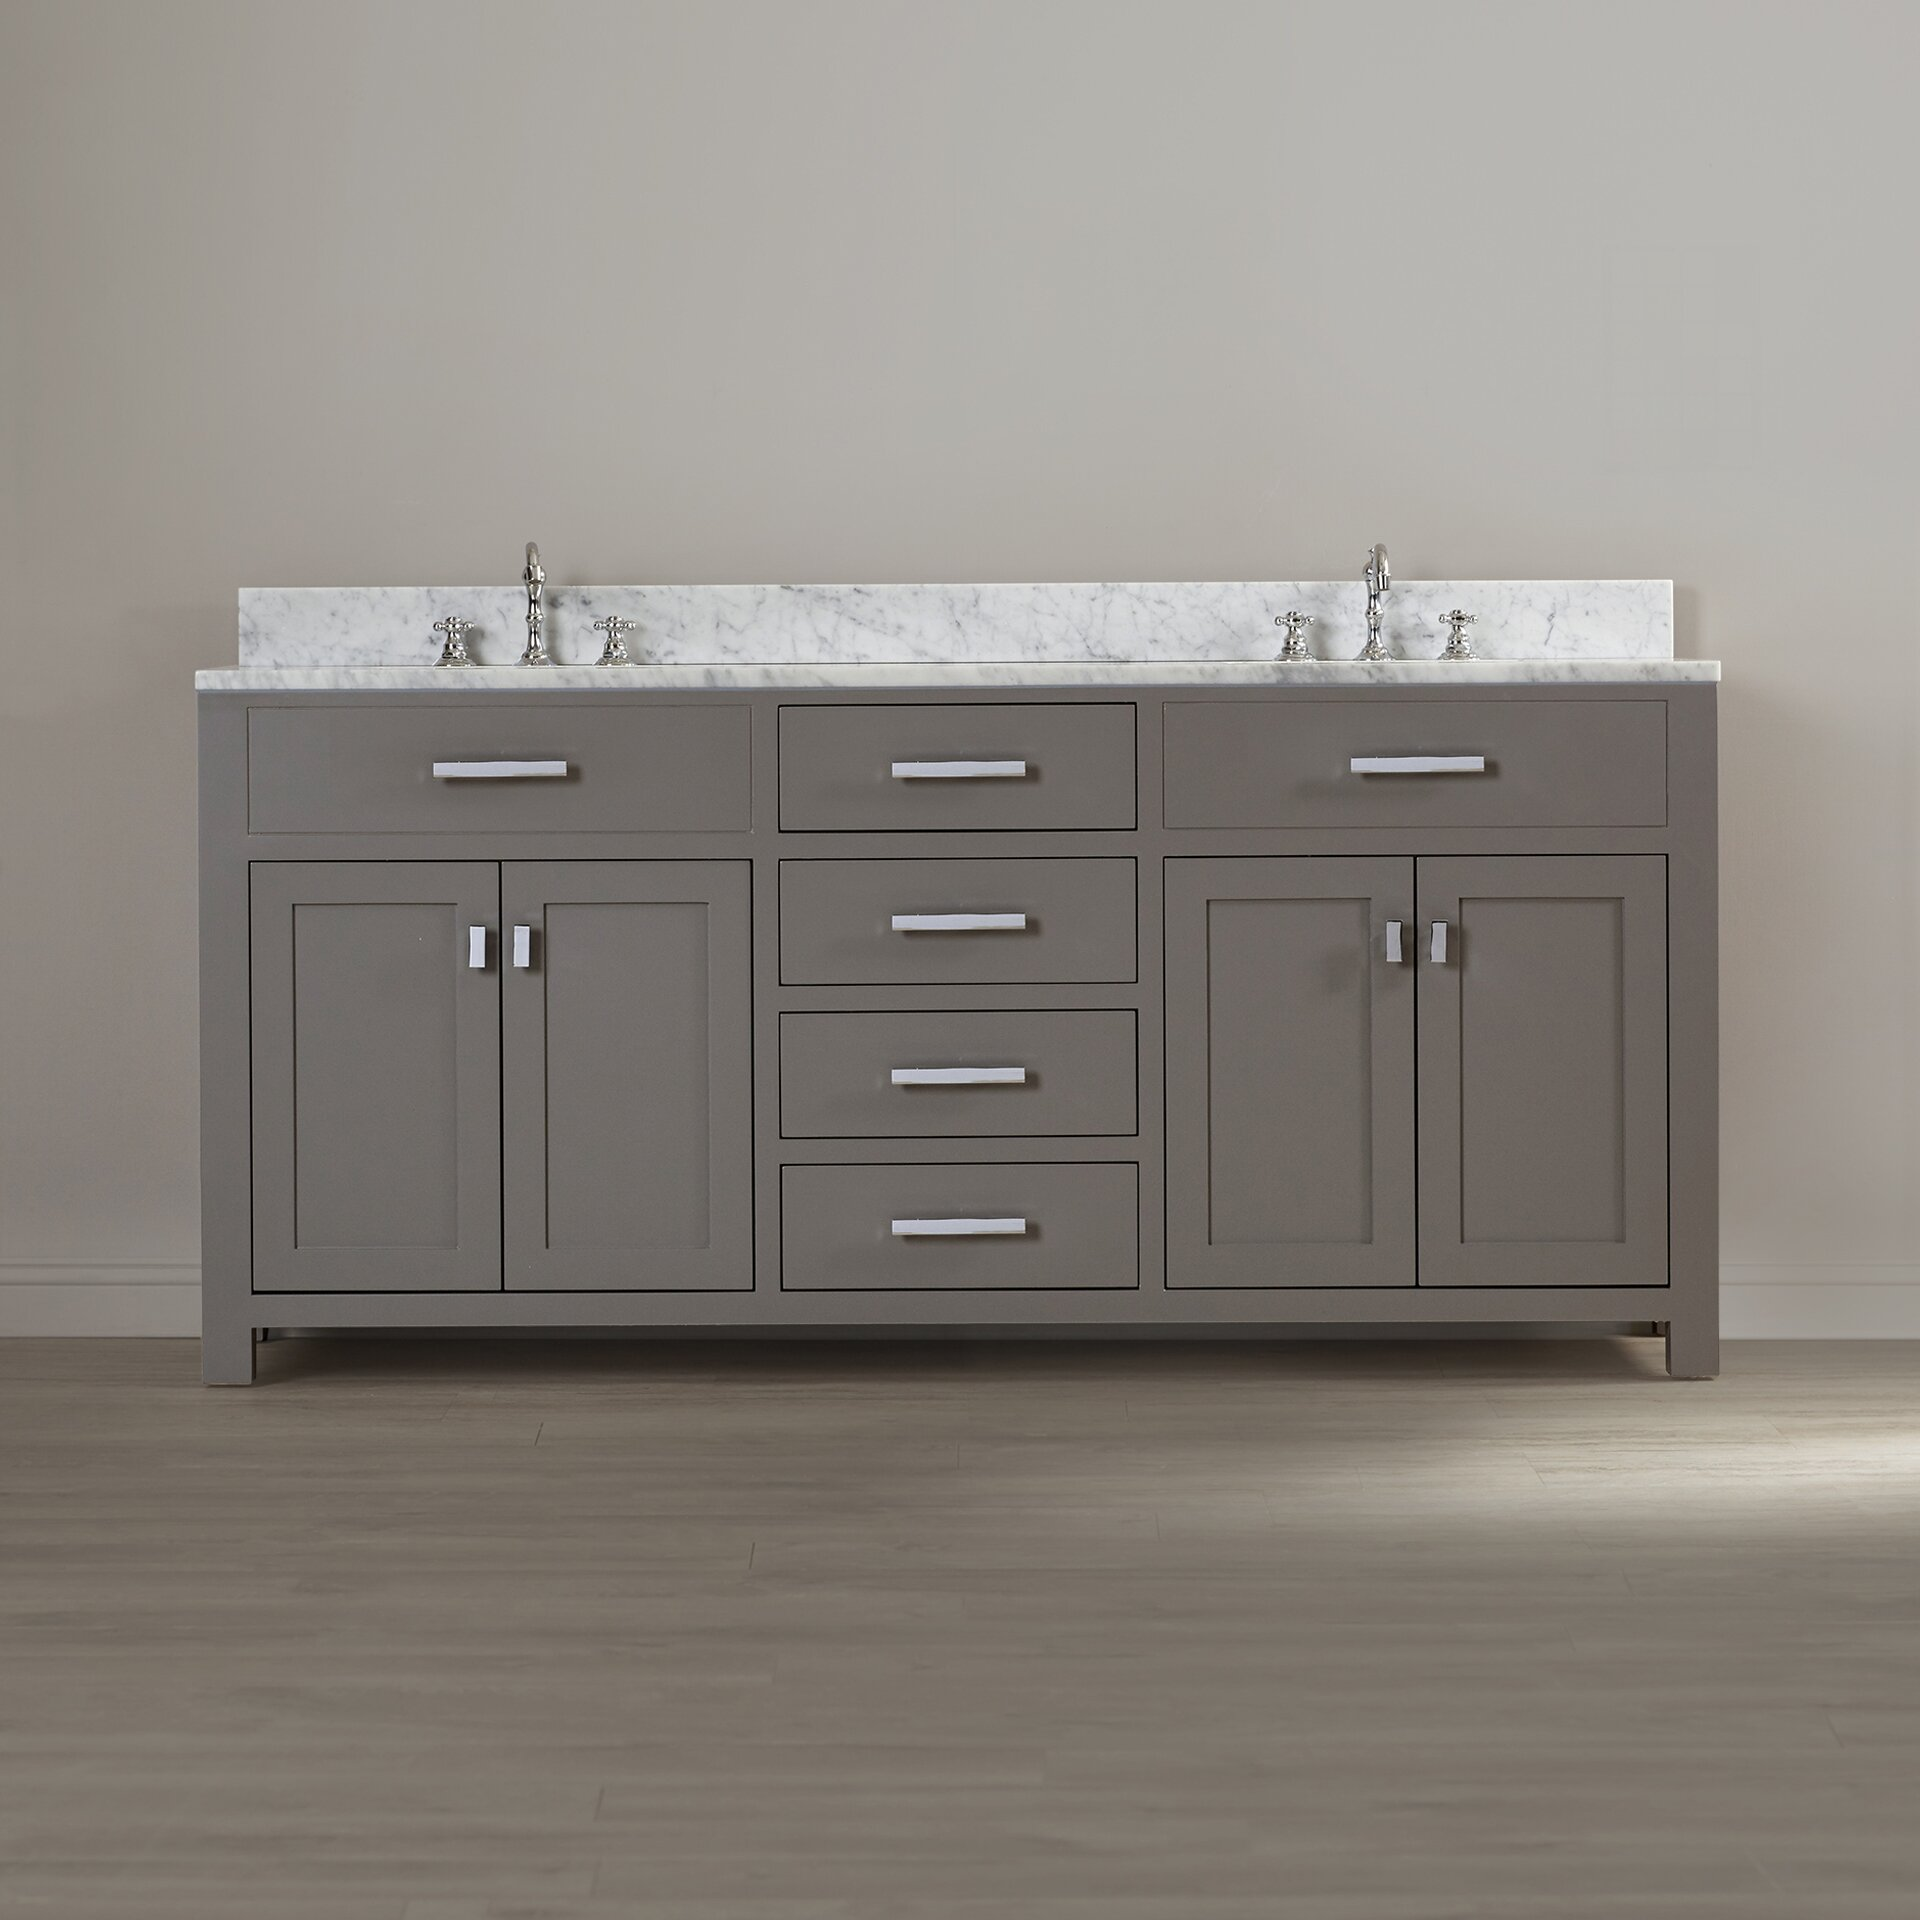 Dcor design creighton 72 double sink bathroom vanity set for Bathroom 72 double vanity